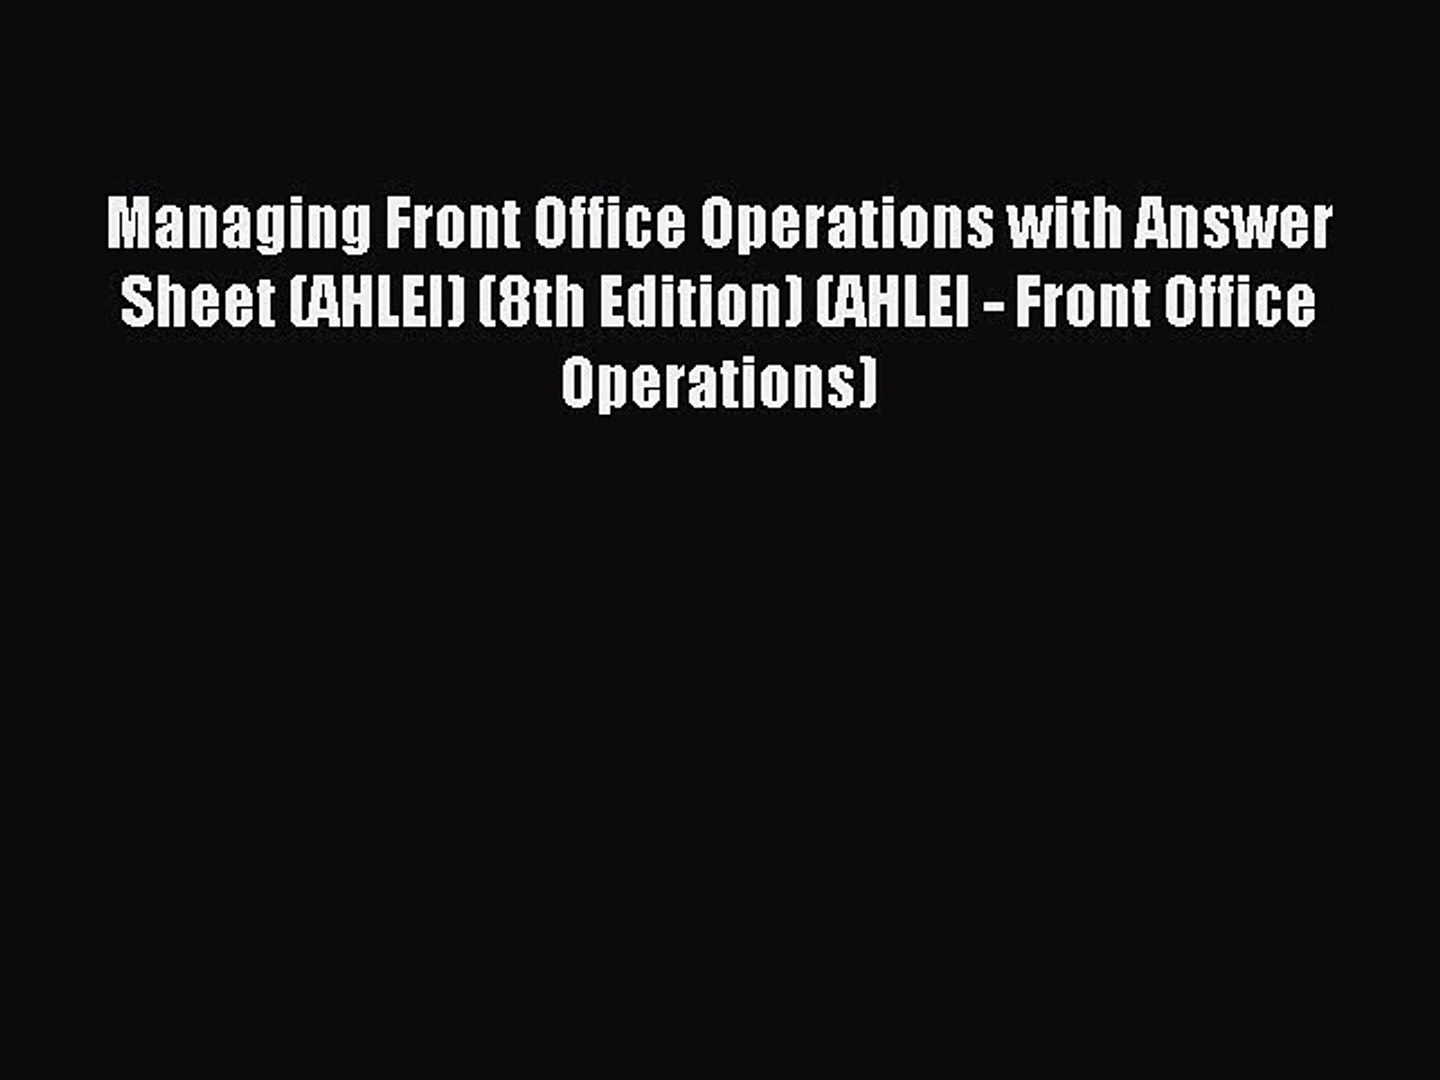 Read Managing Front Office Operations with Answer Sheet (AHLEI) (8th Edition) (AHLEI - Front